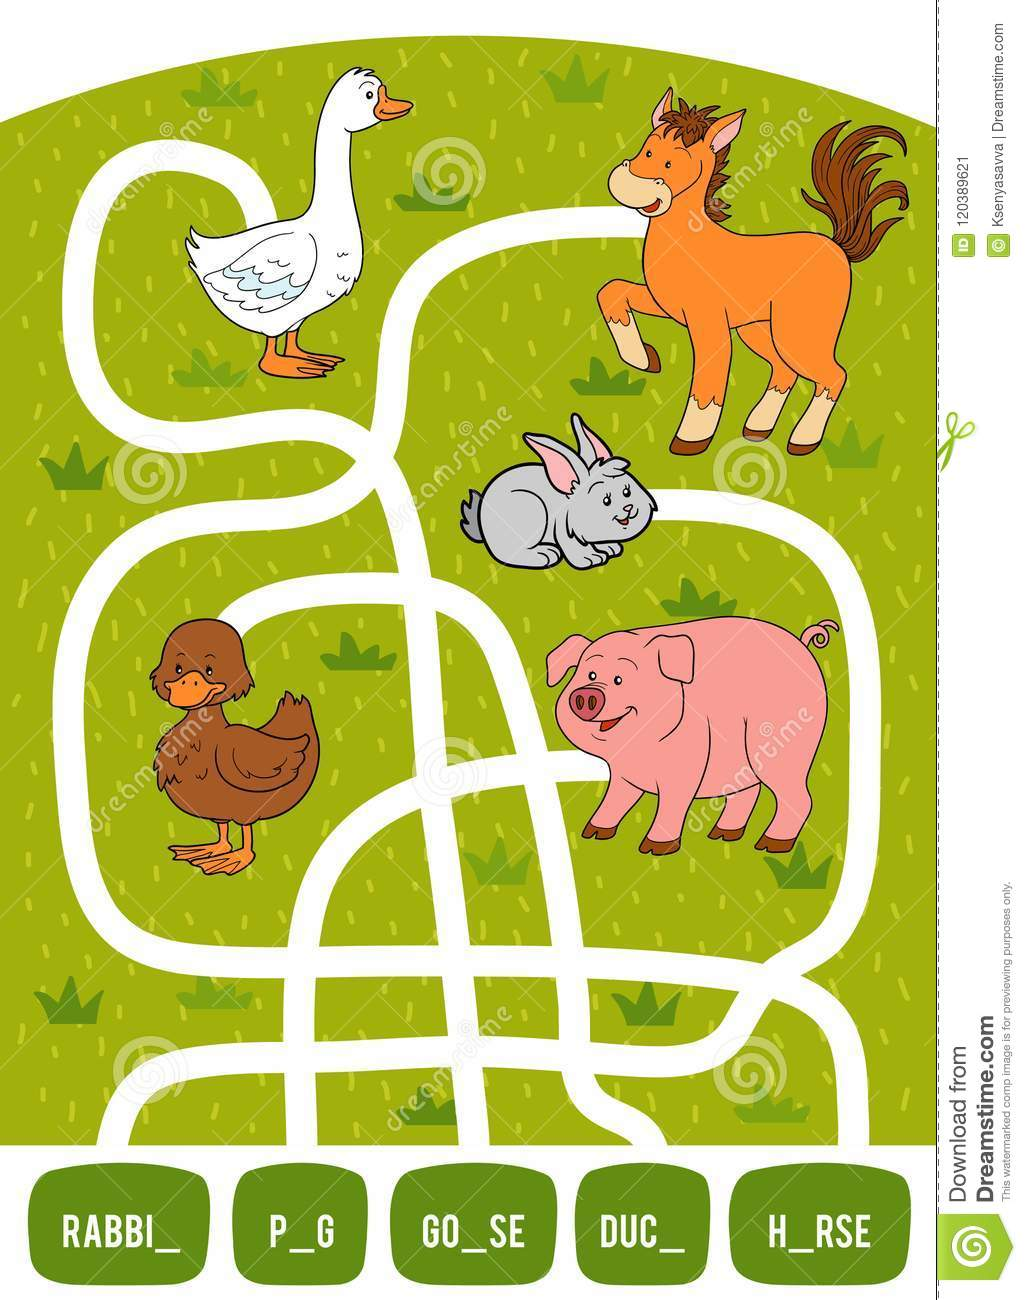 Maze Game For Children Rabbit Duck Pig Goose And Horse